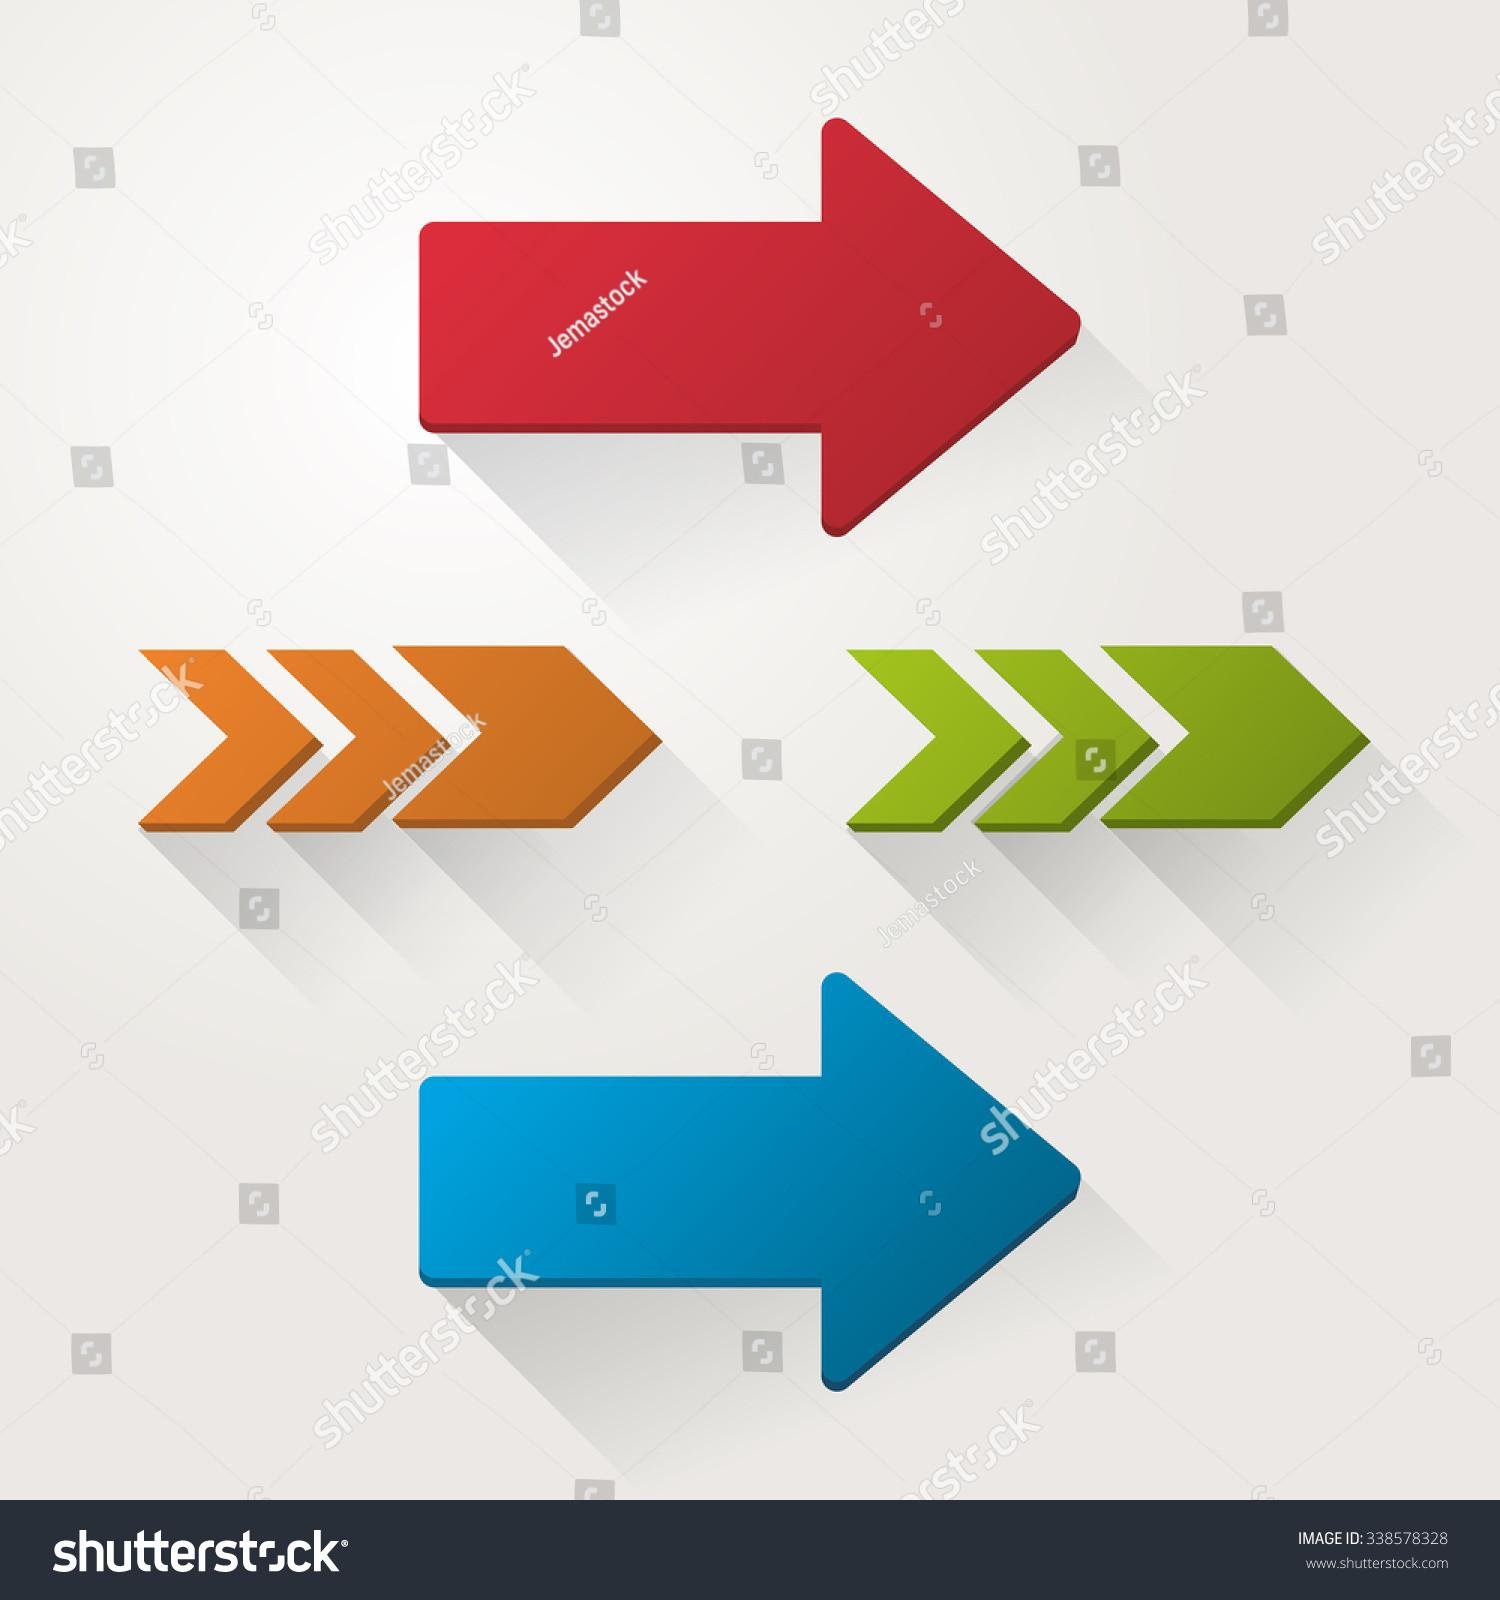 Direction Concept Arrow Design Vector Illustration Stock